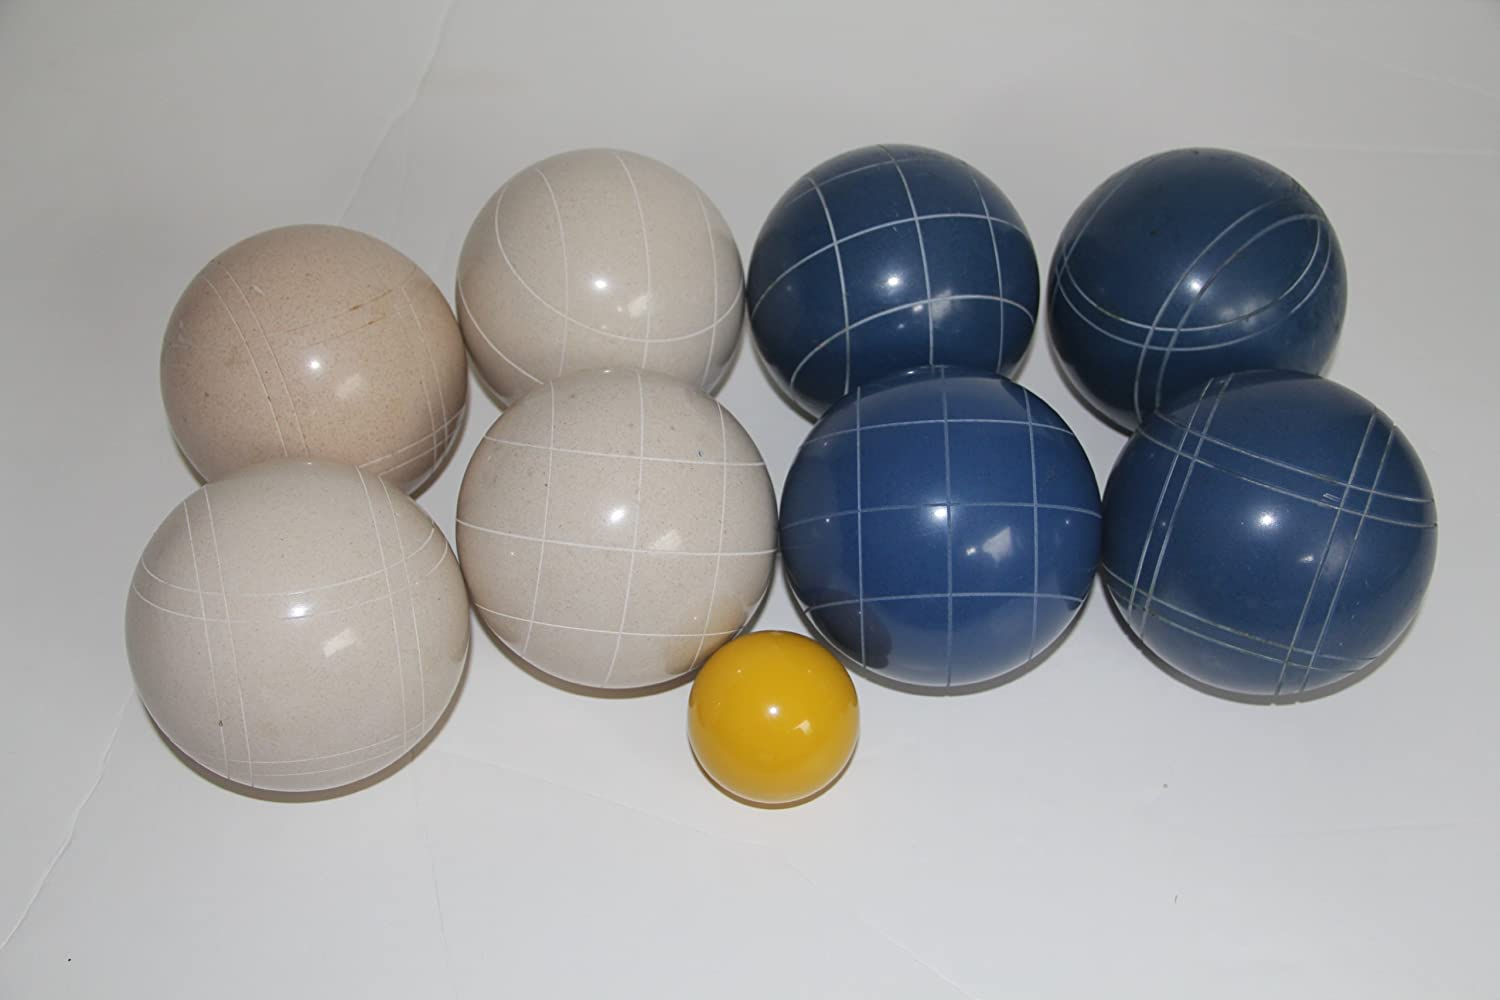 Premium Quality EPCO Tournament Bocce Set - 110mm Blue and White Bocce Balls ...